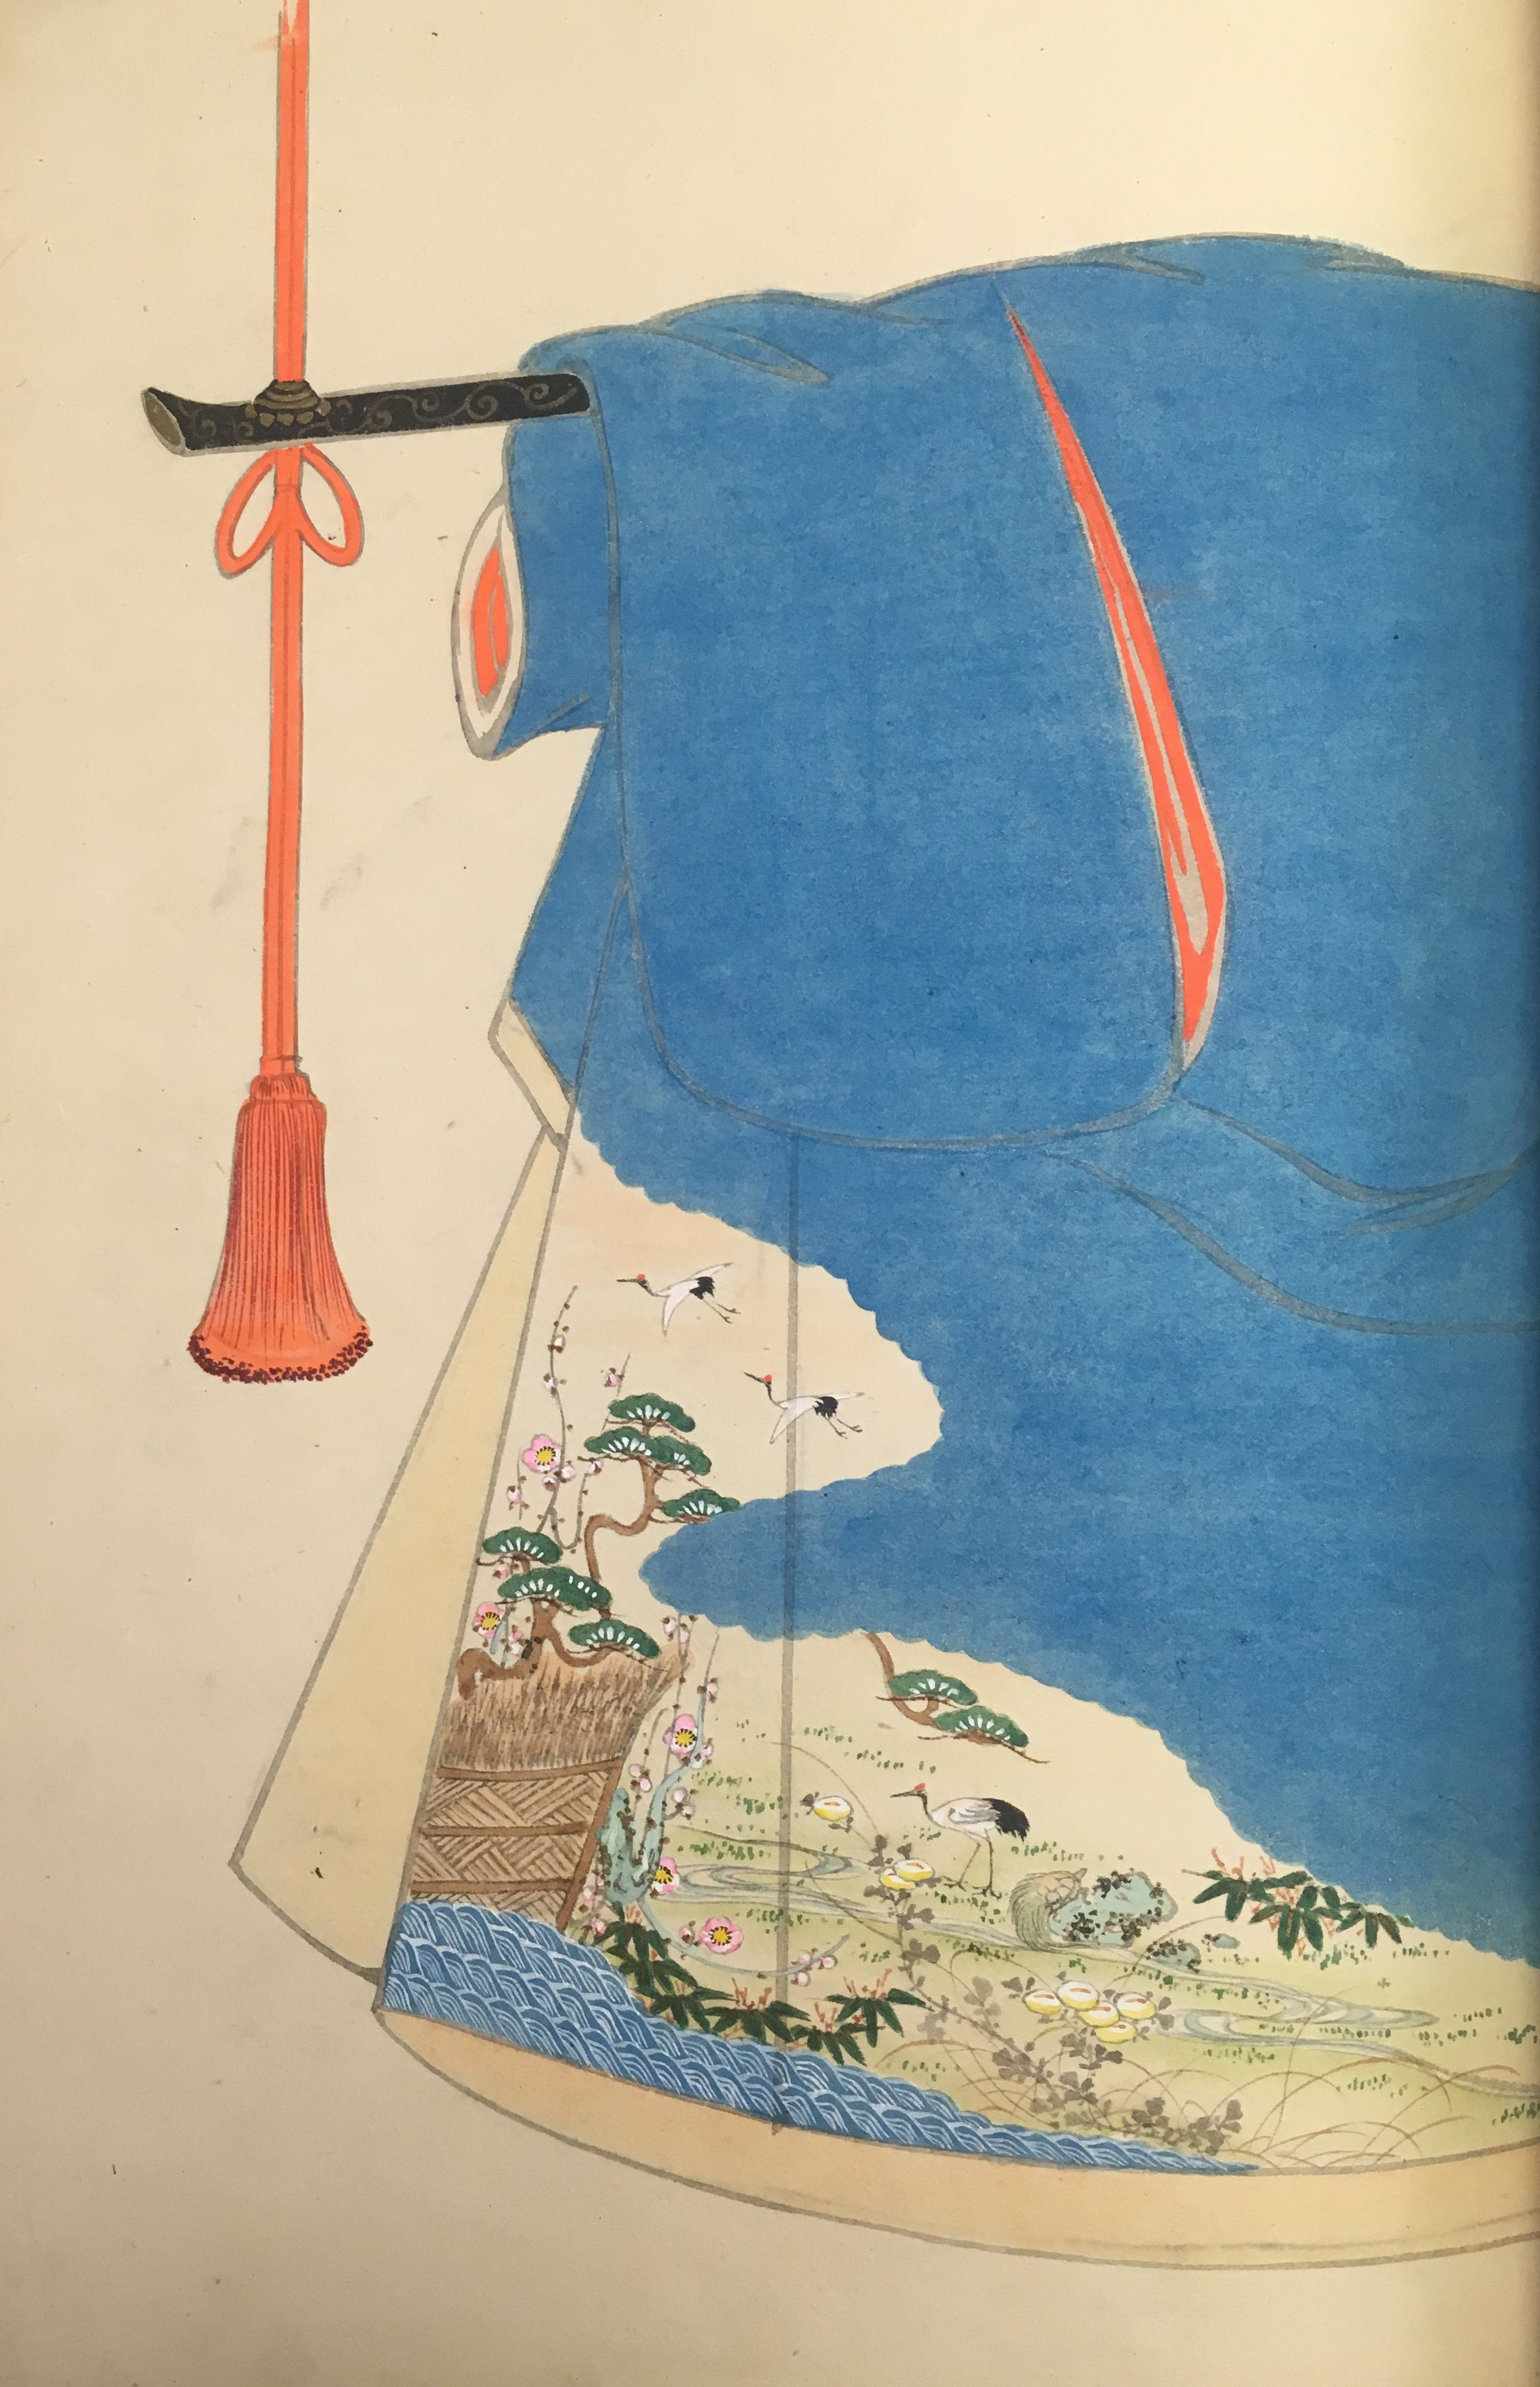 A blue kimono design. The kimono has a tan interior, and a pattern depicting a pond scene (herons, grasses, trees, and water) in the lower exterior corner.